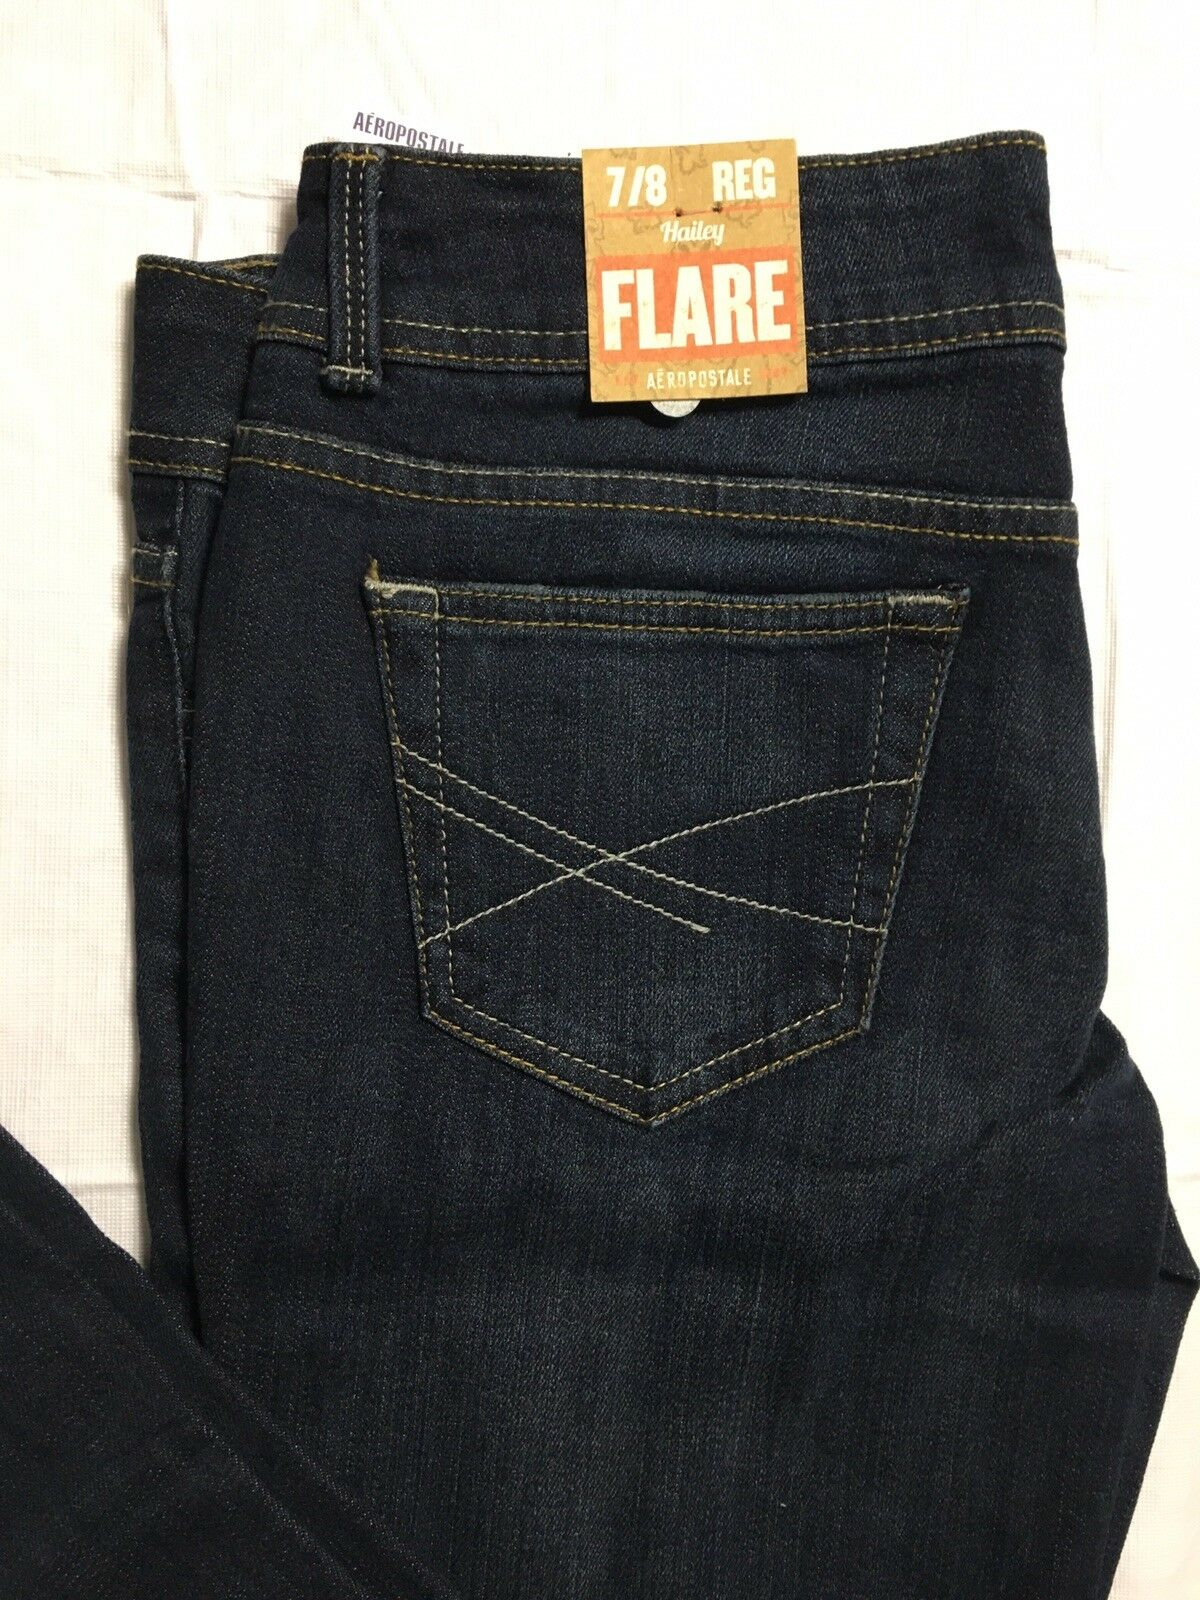 Aeropostale Hailey Jeans Size 7 8 Regular Flare Leg Low Rise Stretch Distressed